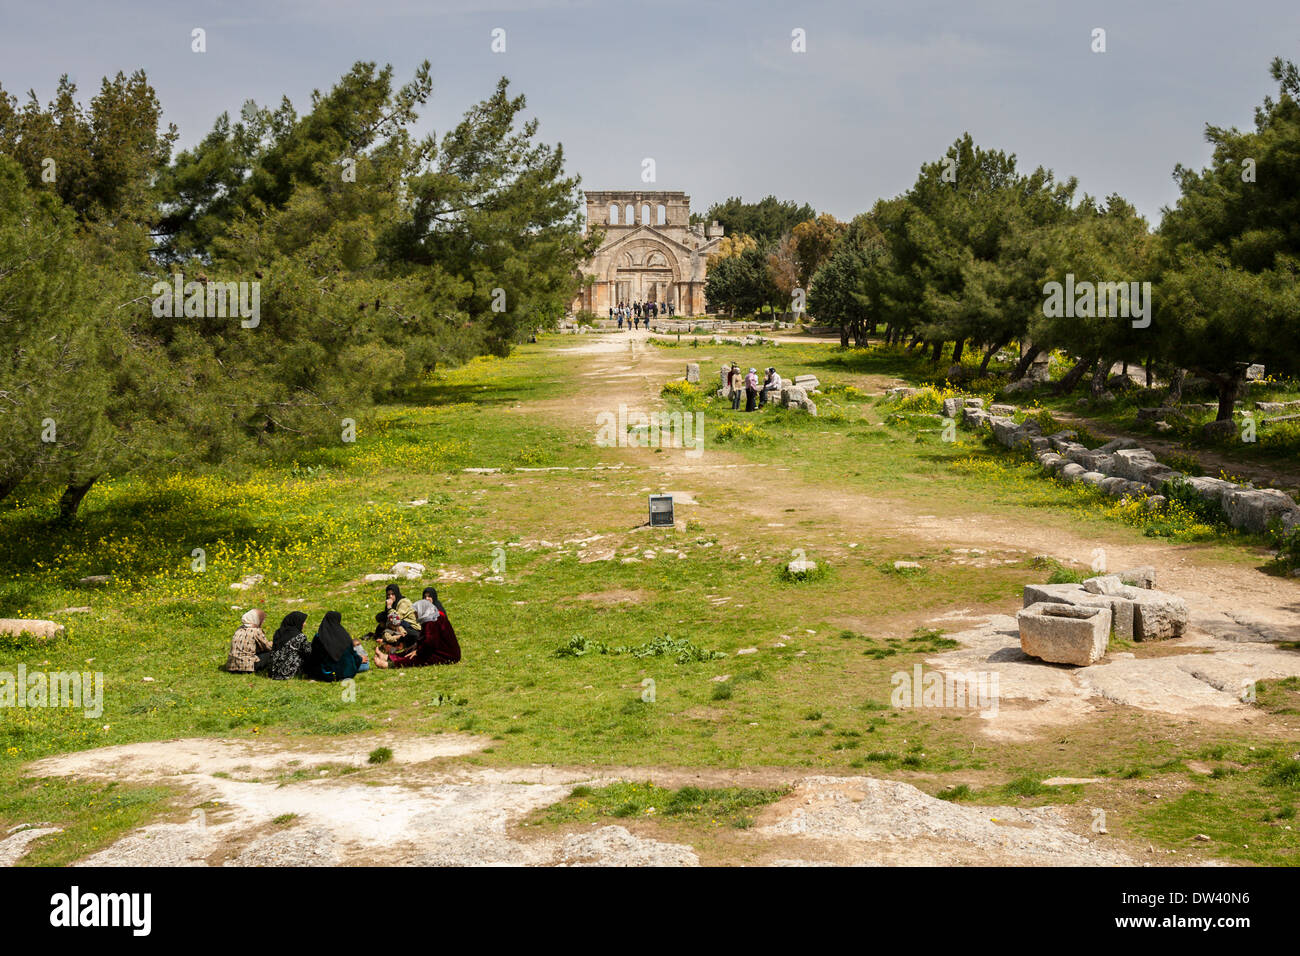 Muslim families picnicking on the grounds of the St. Simeon Basilica near Aleppo, Syria. - Stock Image